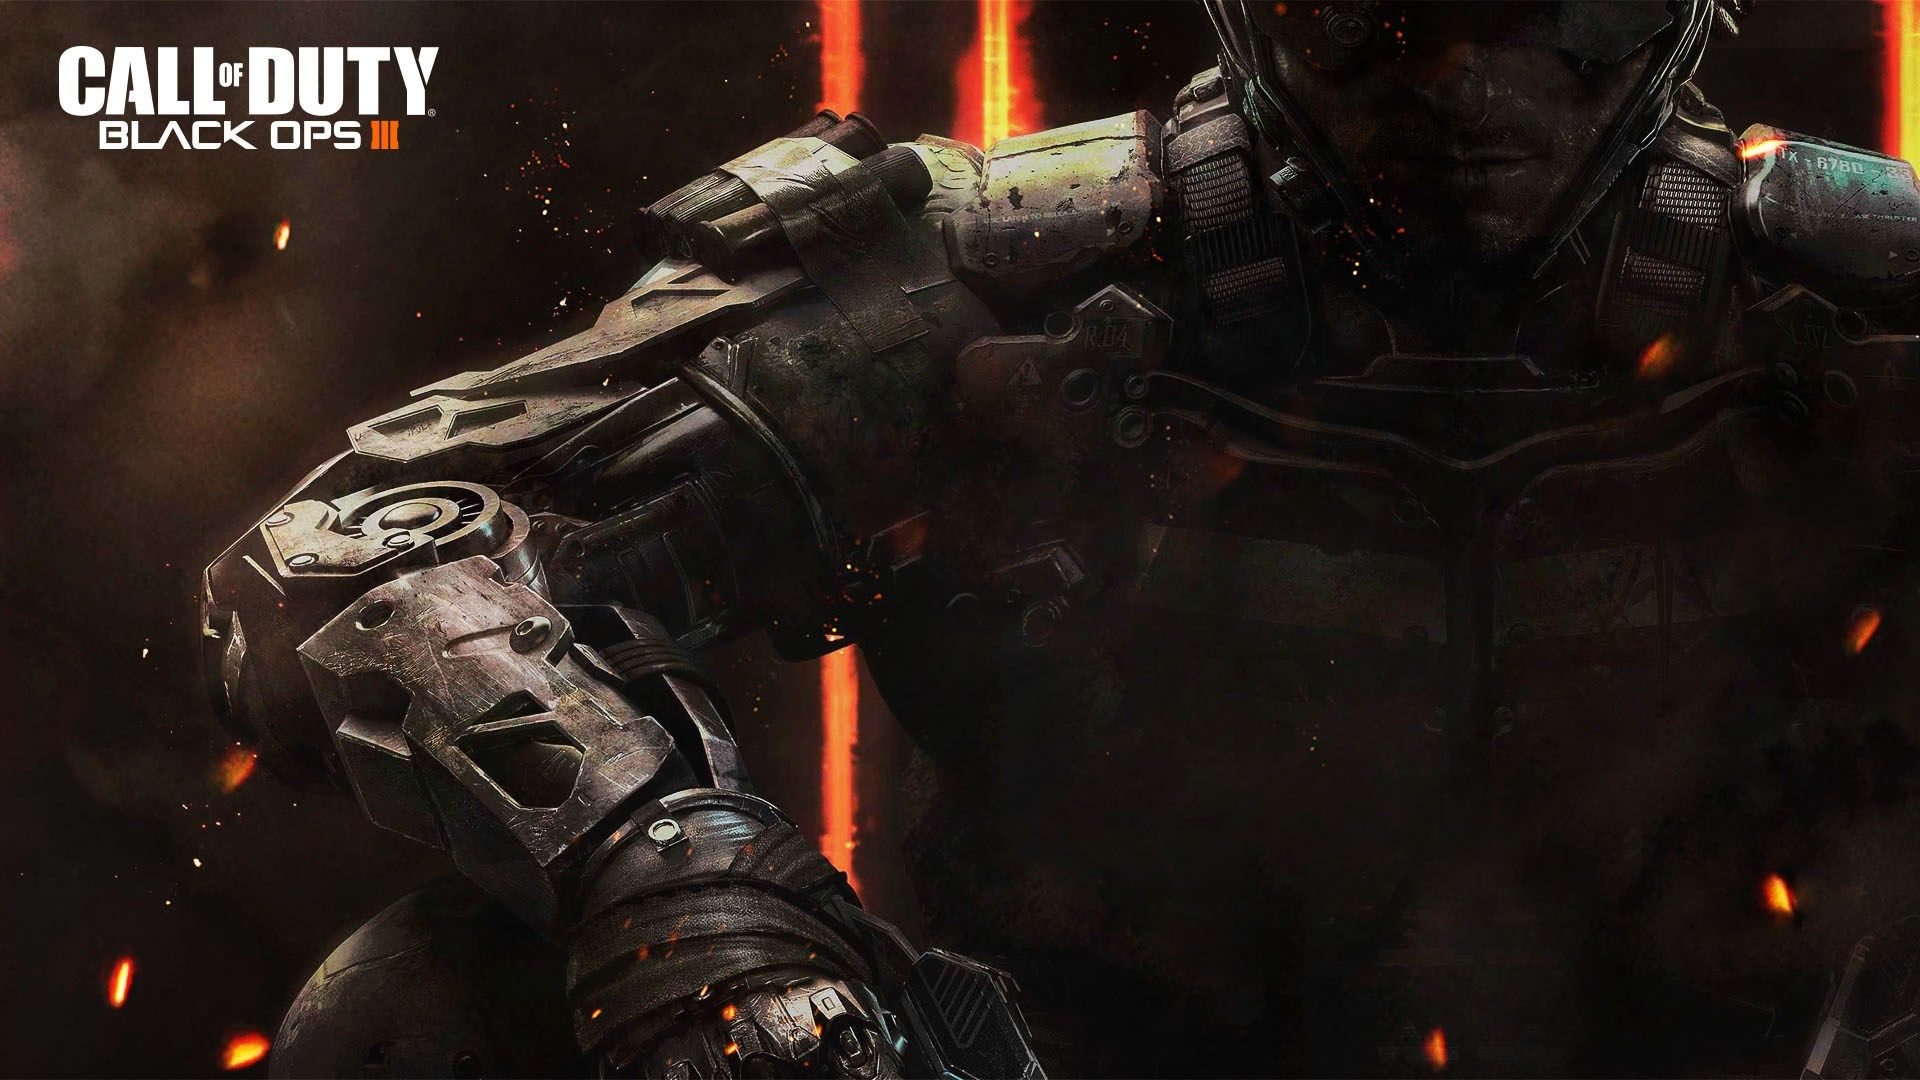 Black Ops 3 Hd Backgrounds 1920x1080